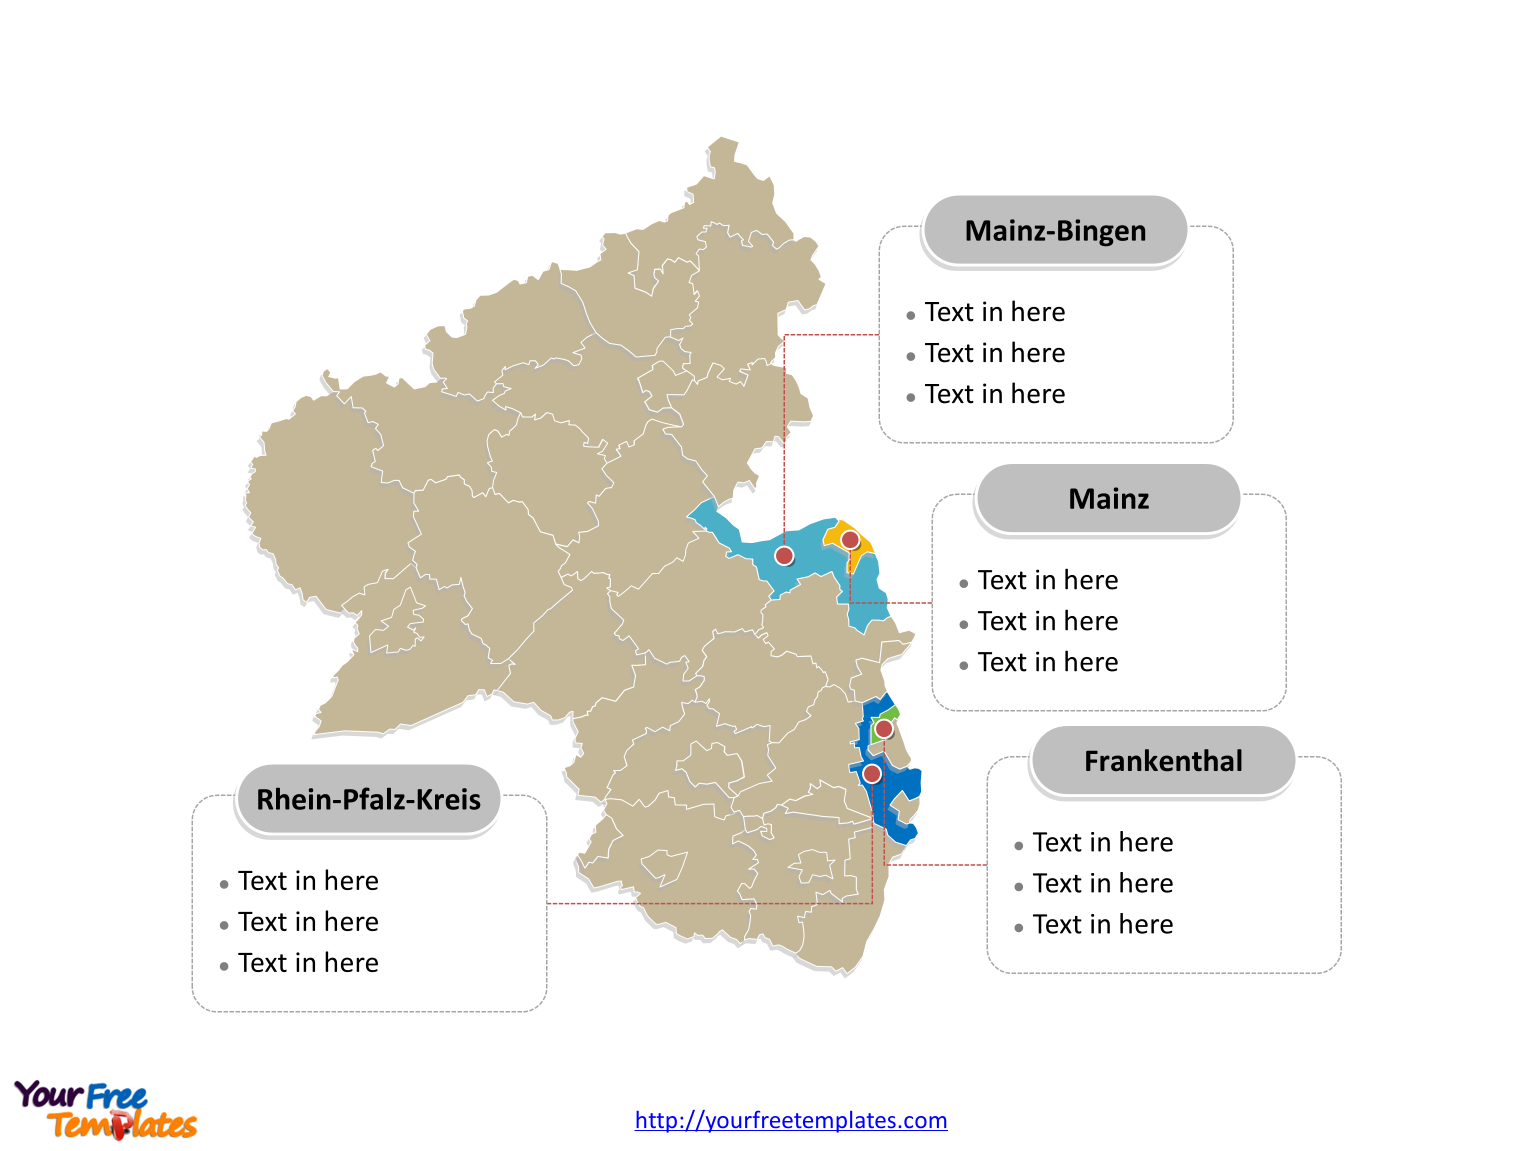 Rhineland-Palatinate Map download labeled with major political districts